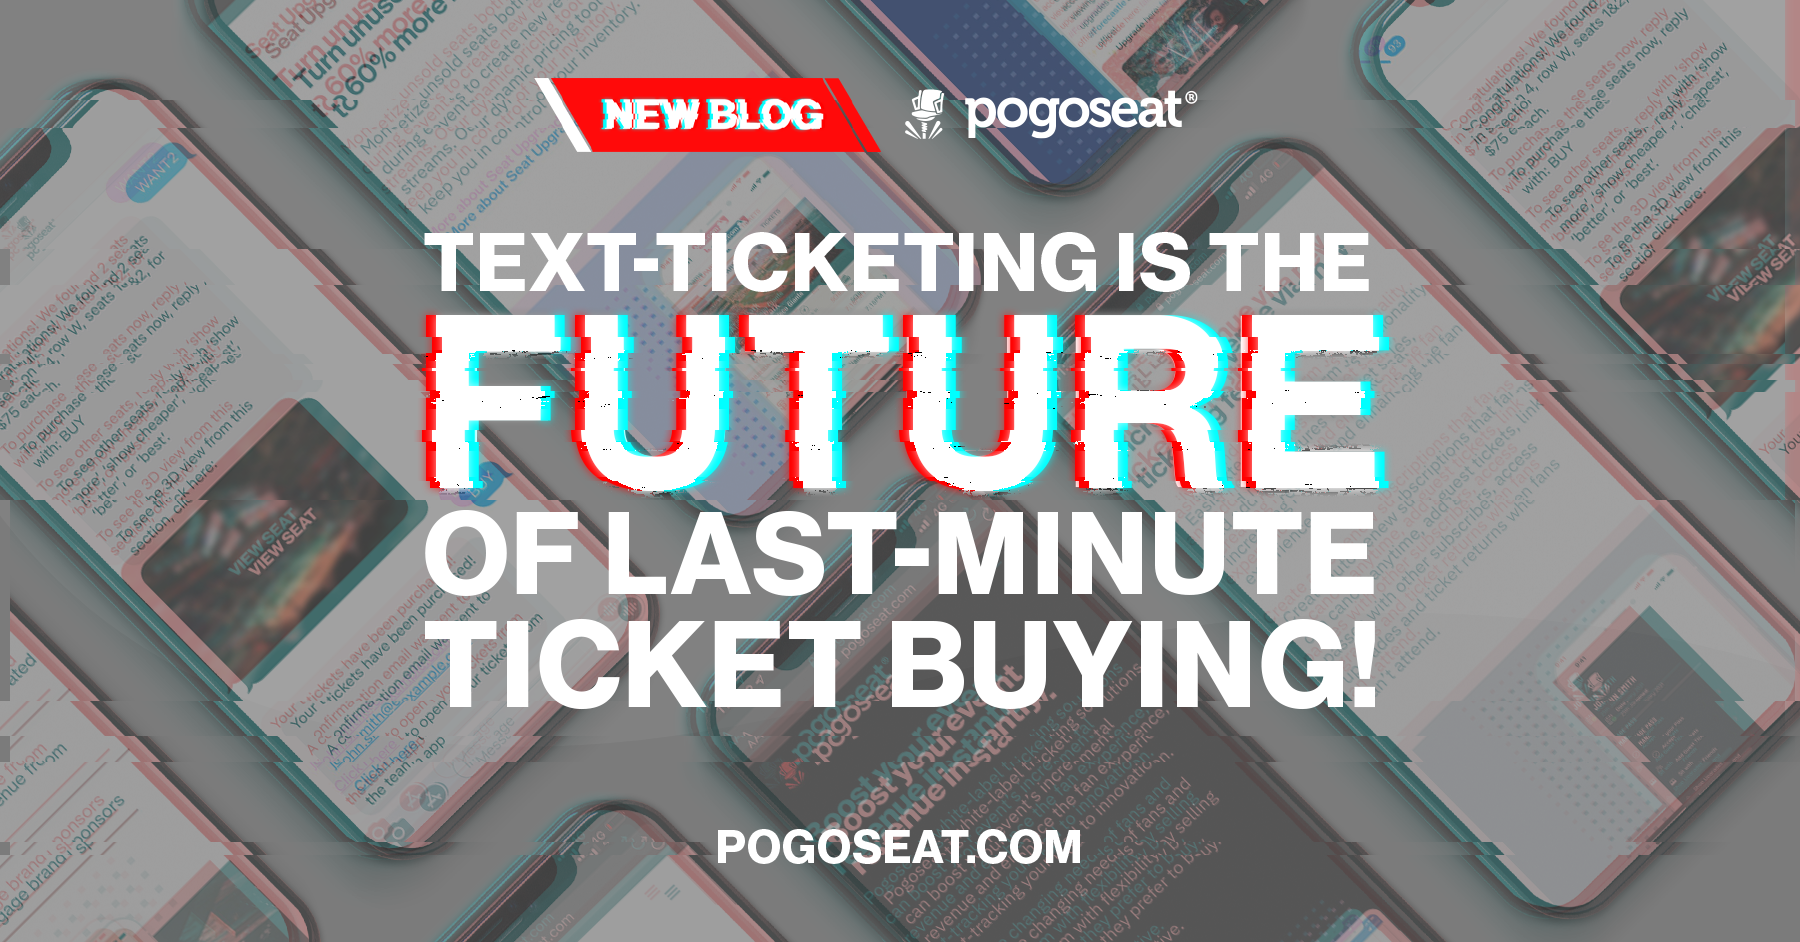 Text-Ticketing is the FUTURE of last-minute ticket buying!